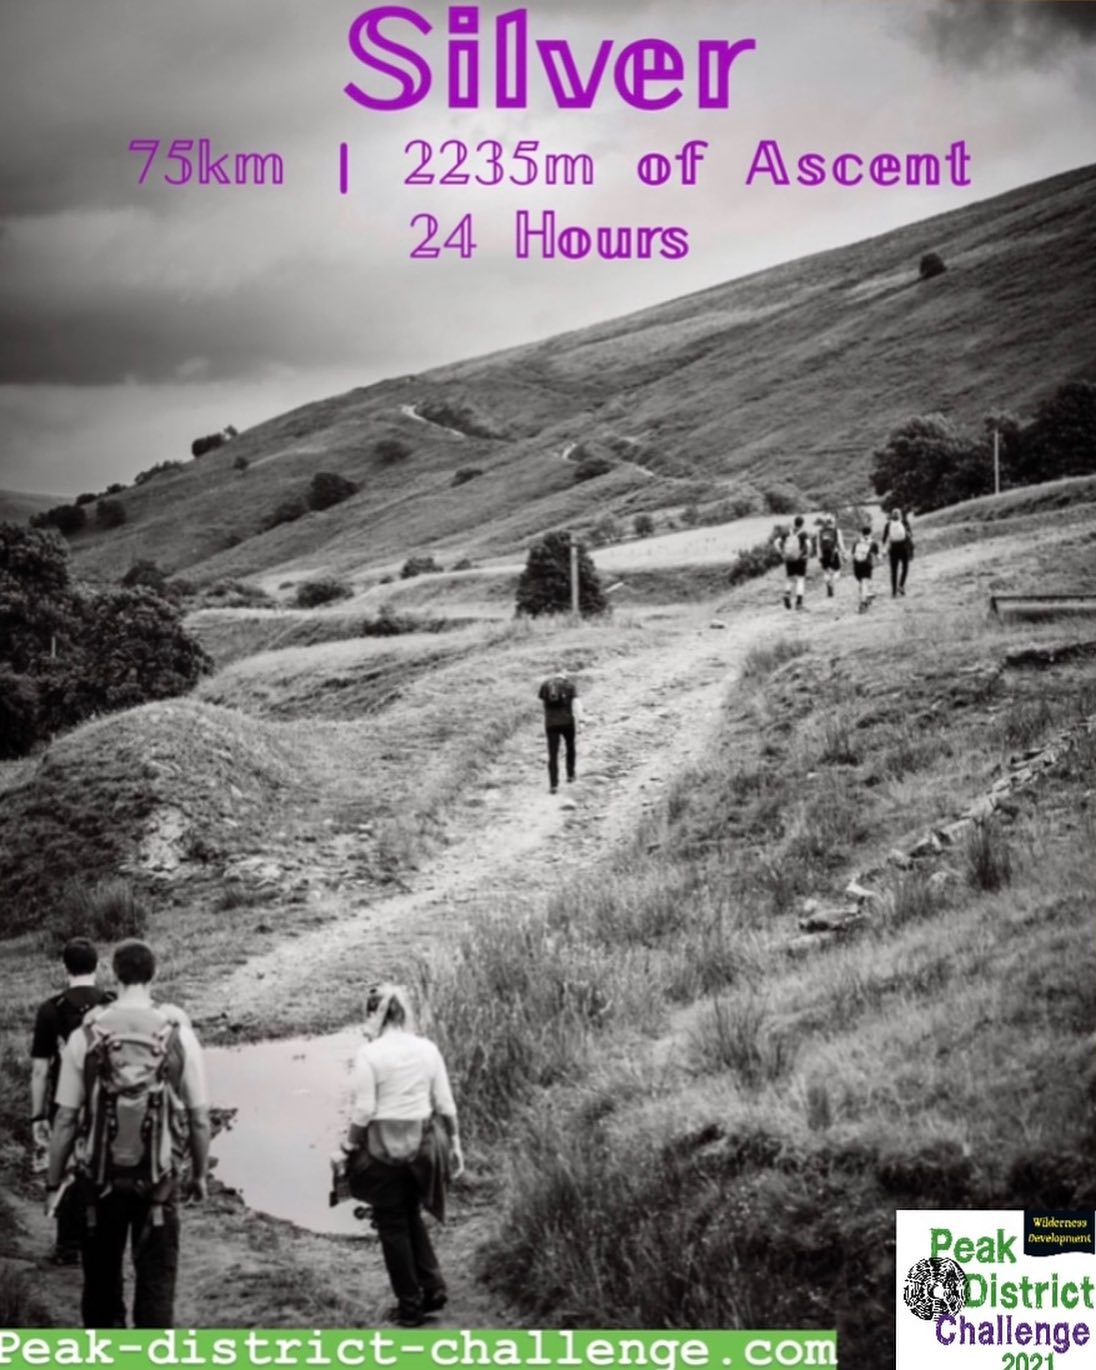 Peak-District-Challenge.com registrations are open with total entry fees for our Silver Challenge...